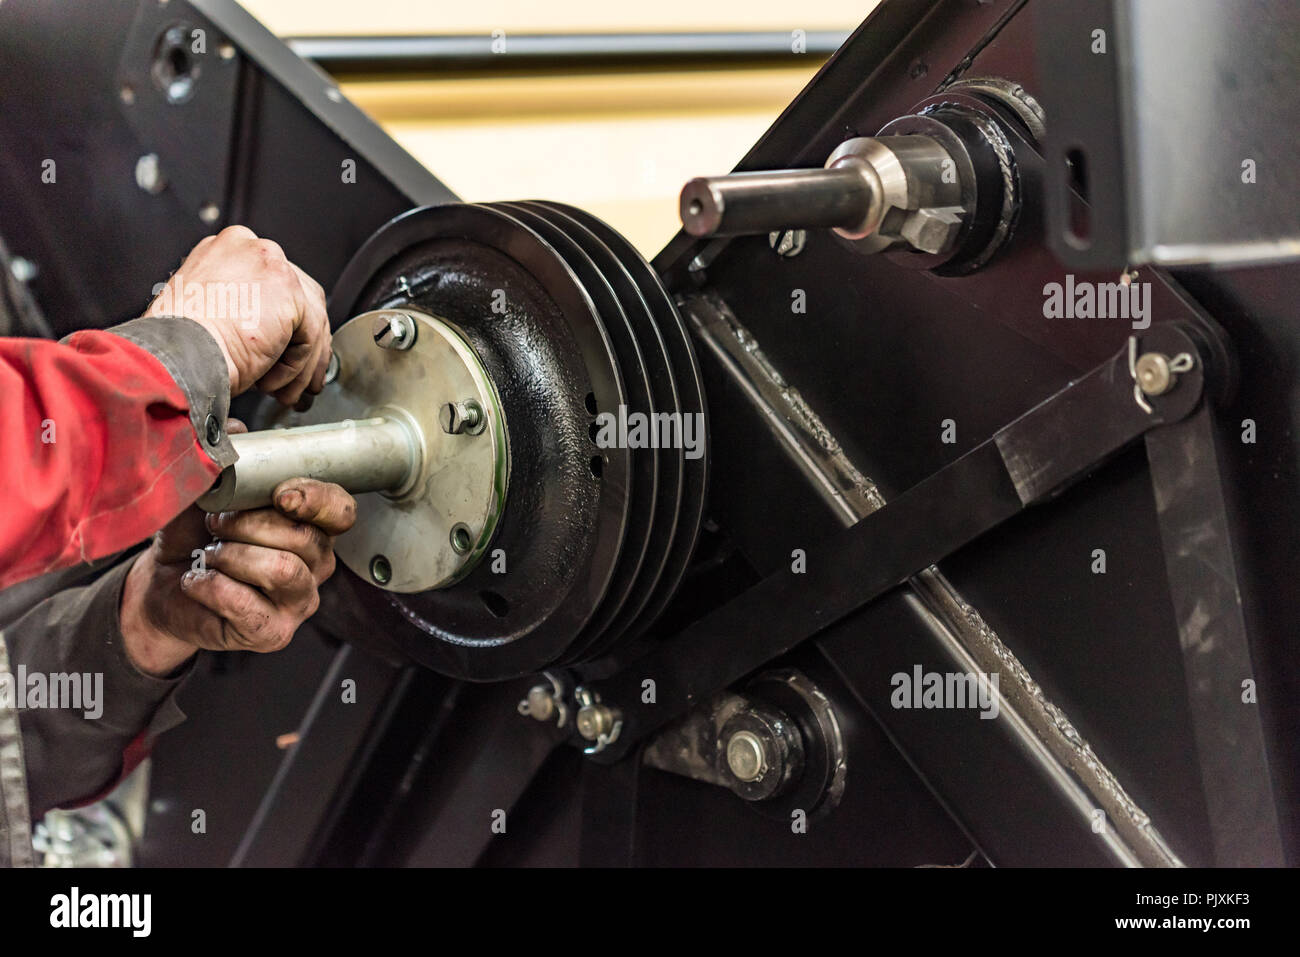 Industrial worker assembles agricultural equipment at plant - Stock Image